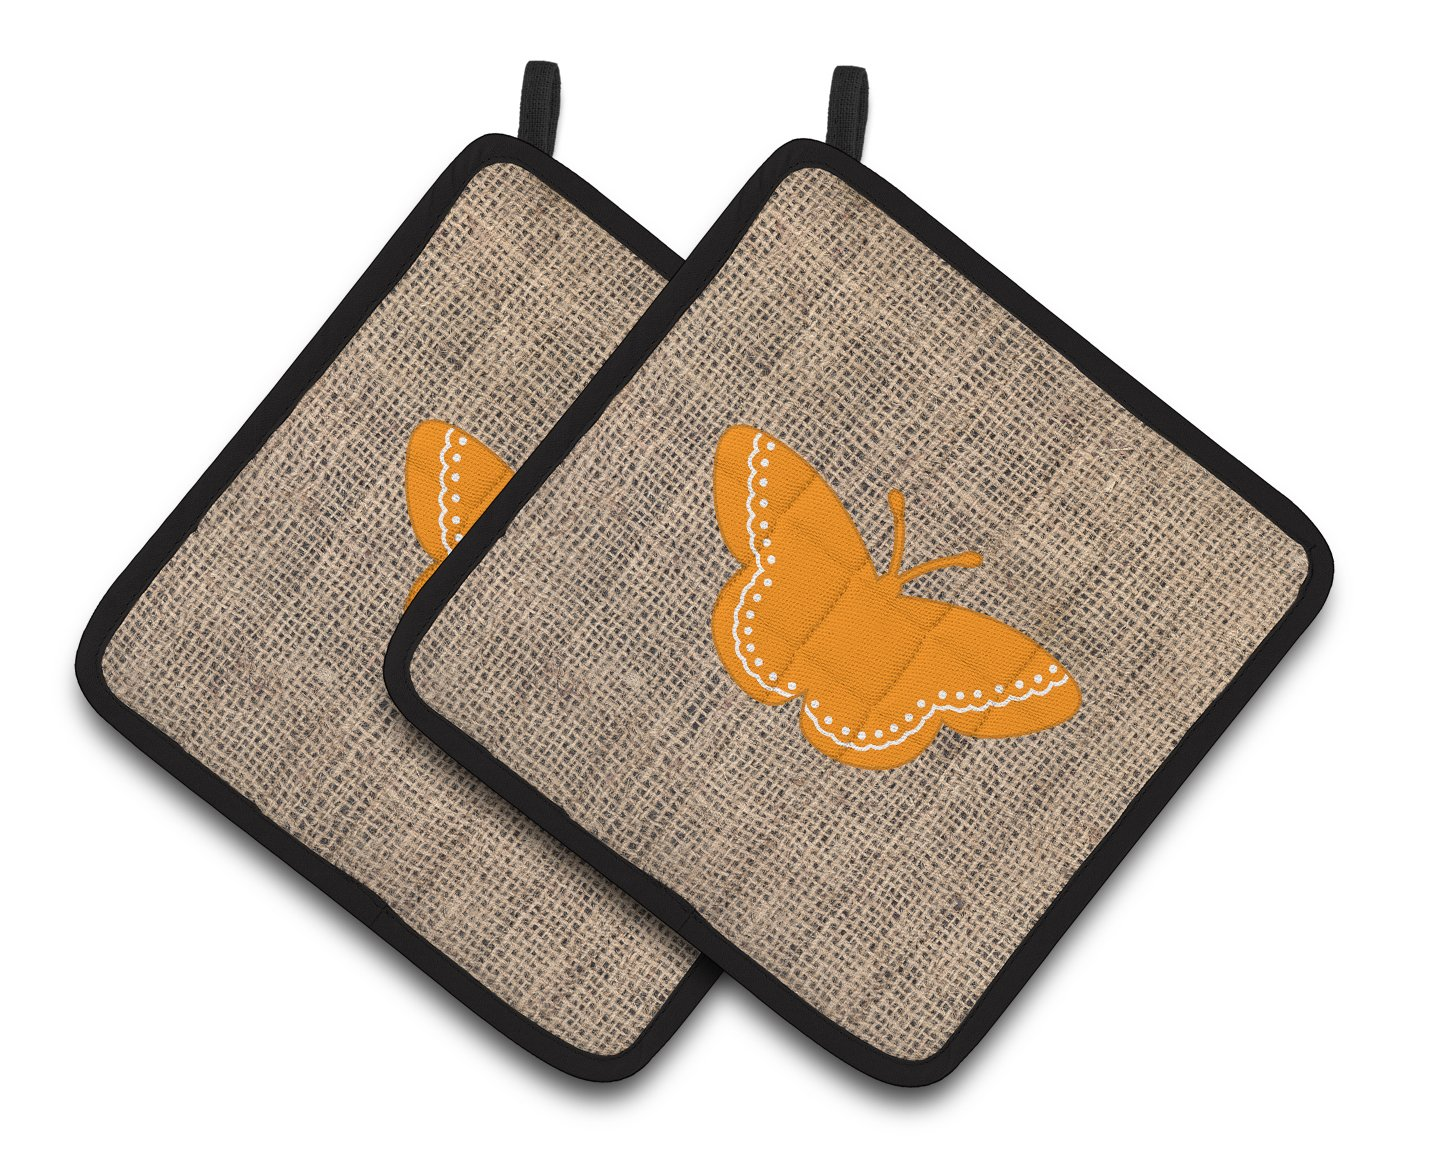 Carolines Treasures Butterfly Faux Burlap /& Orange Pair of Pot Holders BB1032-BL-OR-PTHD 7.5HX7.5W Multicolor